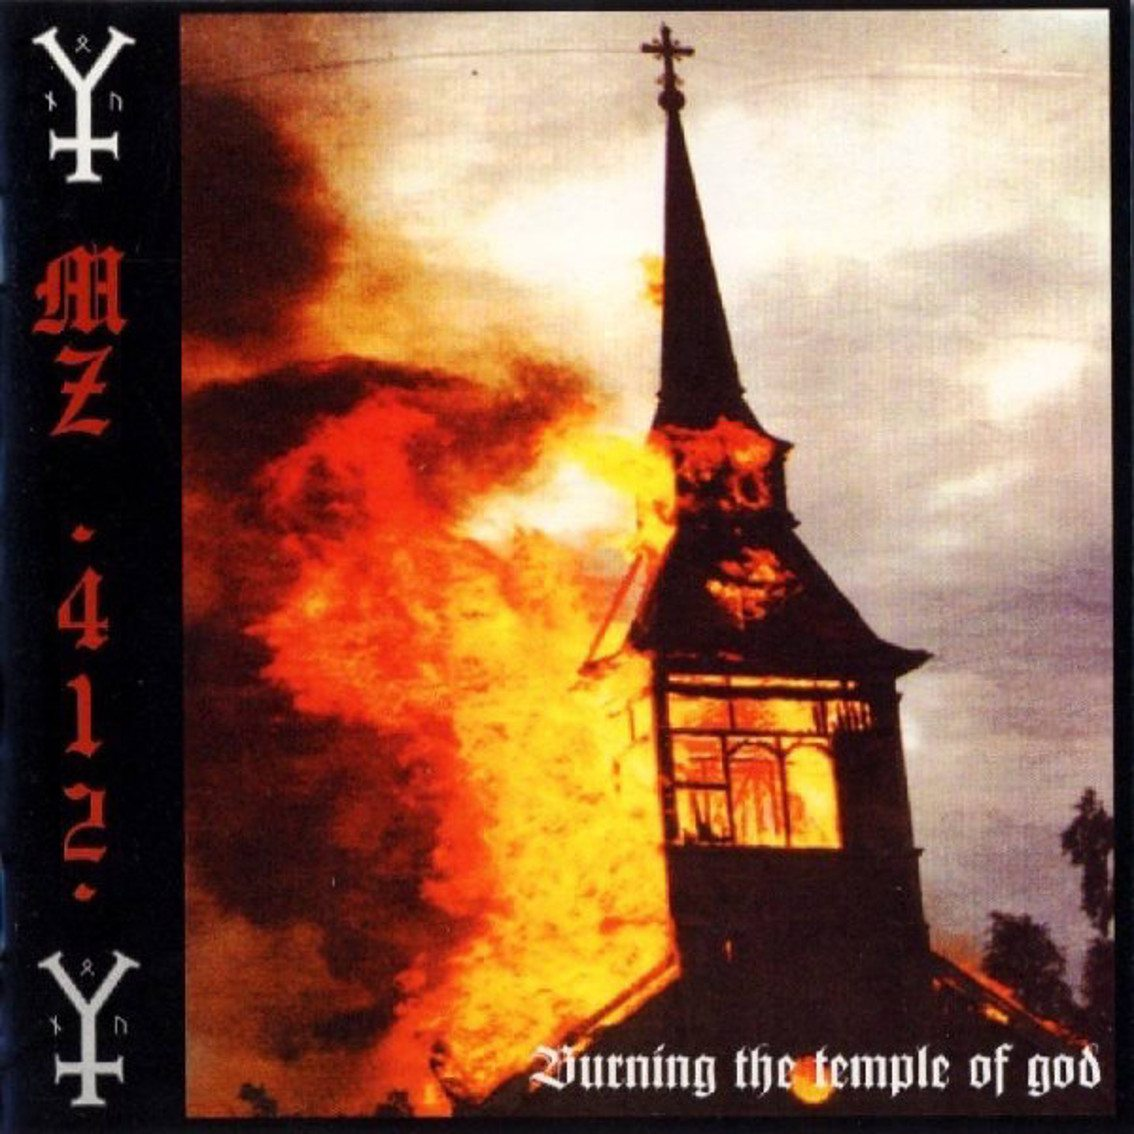 MZ.412 sees re-release classic 'Burning the Temple of God' album on white vinyl (ONLY 206 copies available - get yours here)